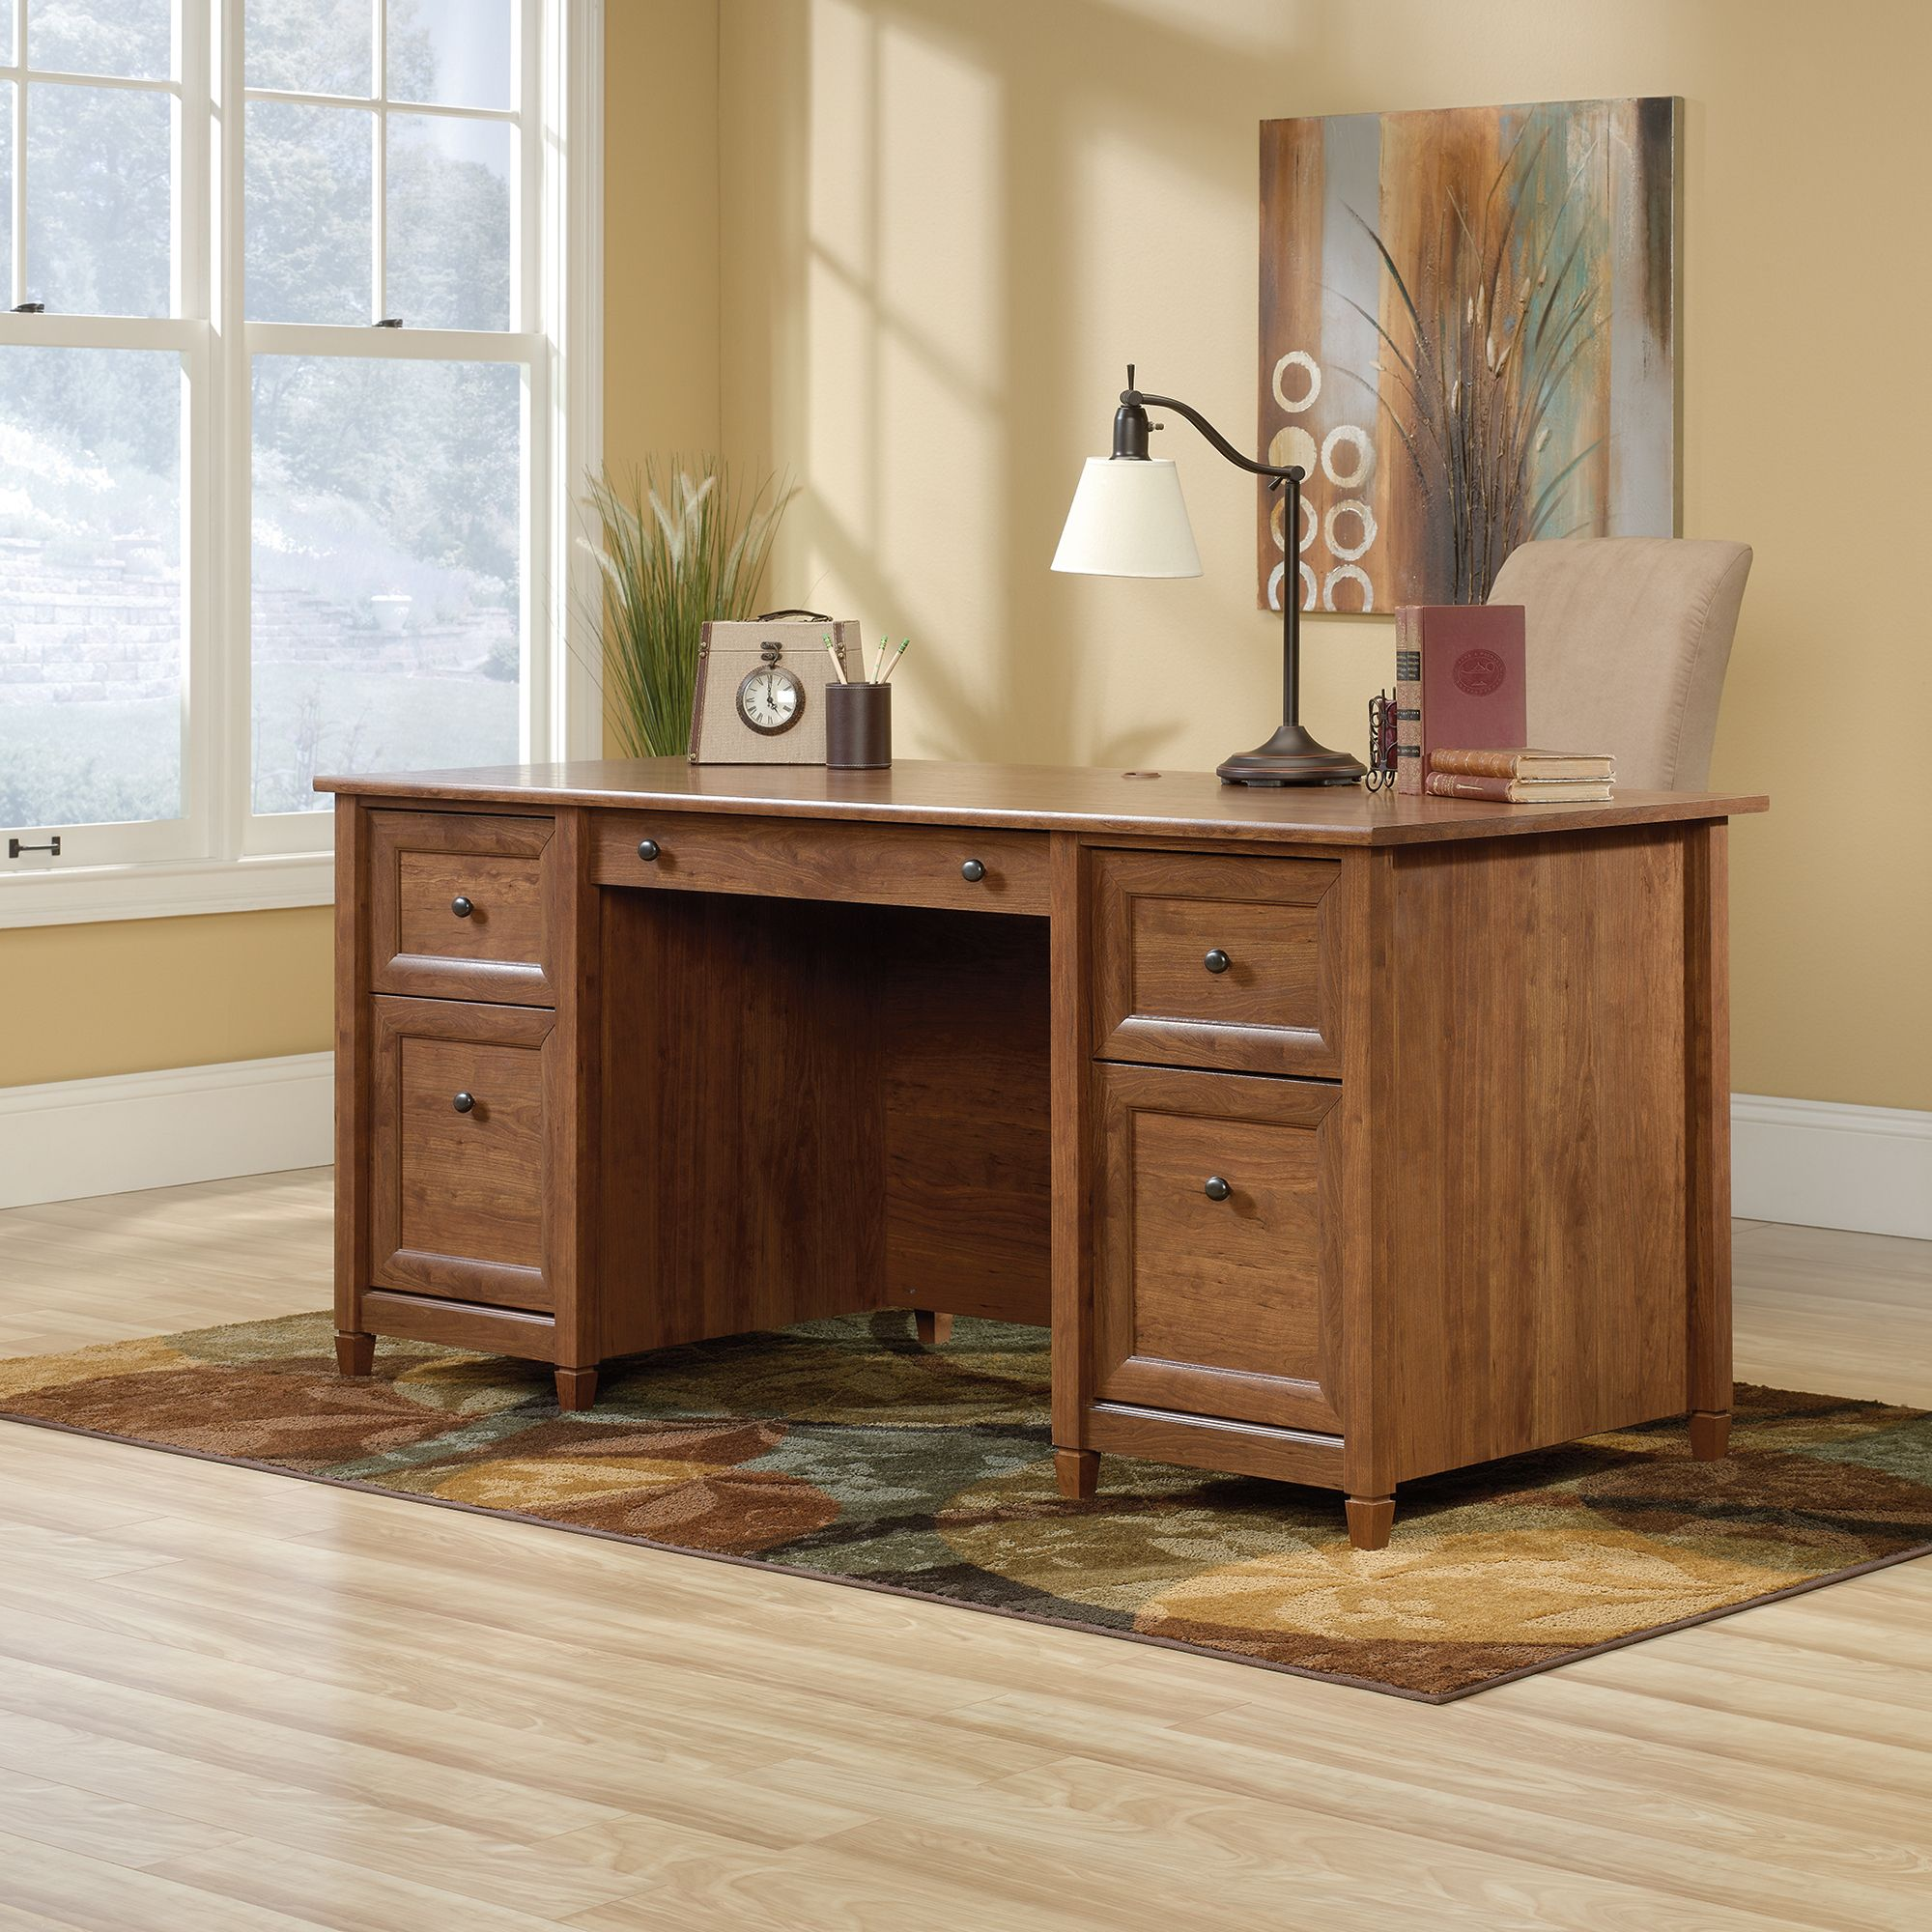 Sauder Edgewater Collection Executive Desk Living Room Sets at